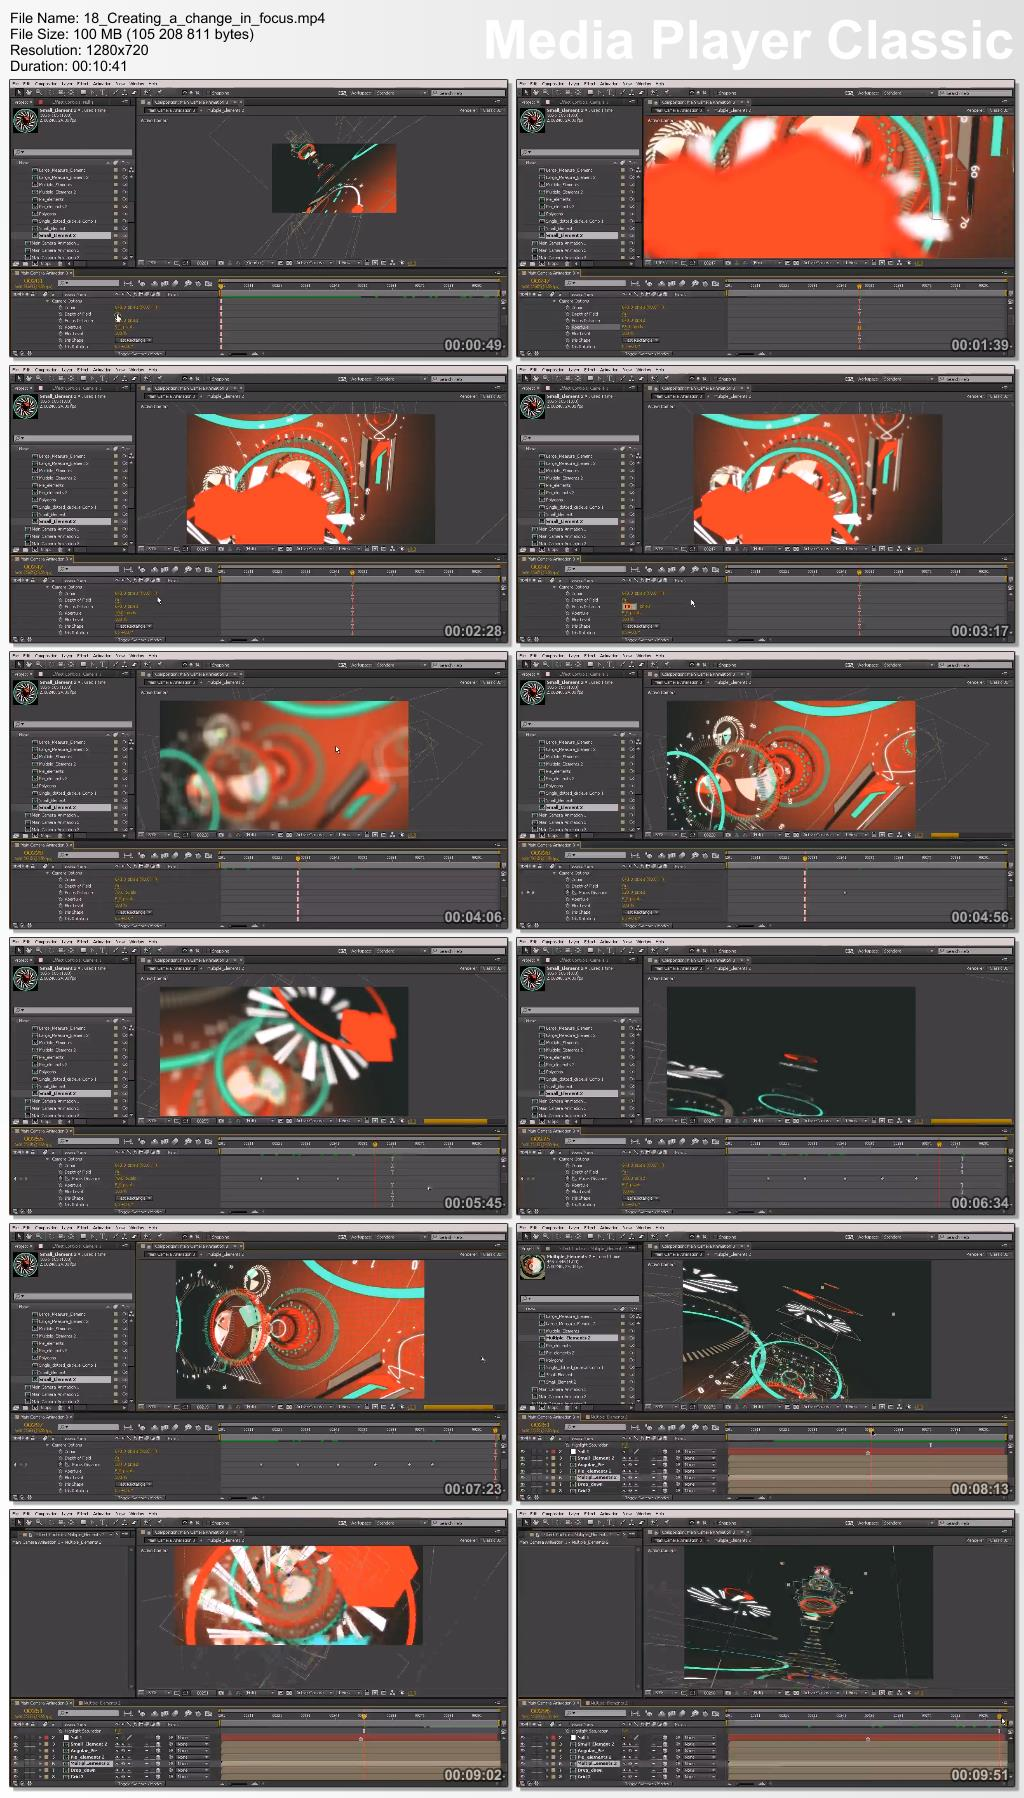 Dixxl Tuxxs - Building a Rigged Camera Composition in After Effects